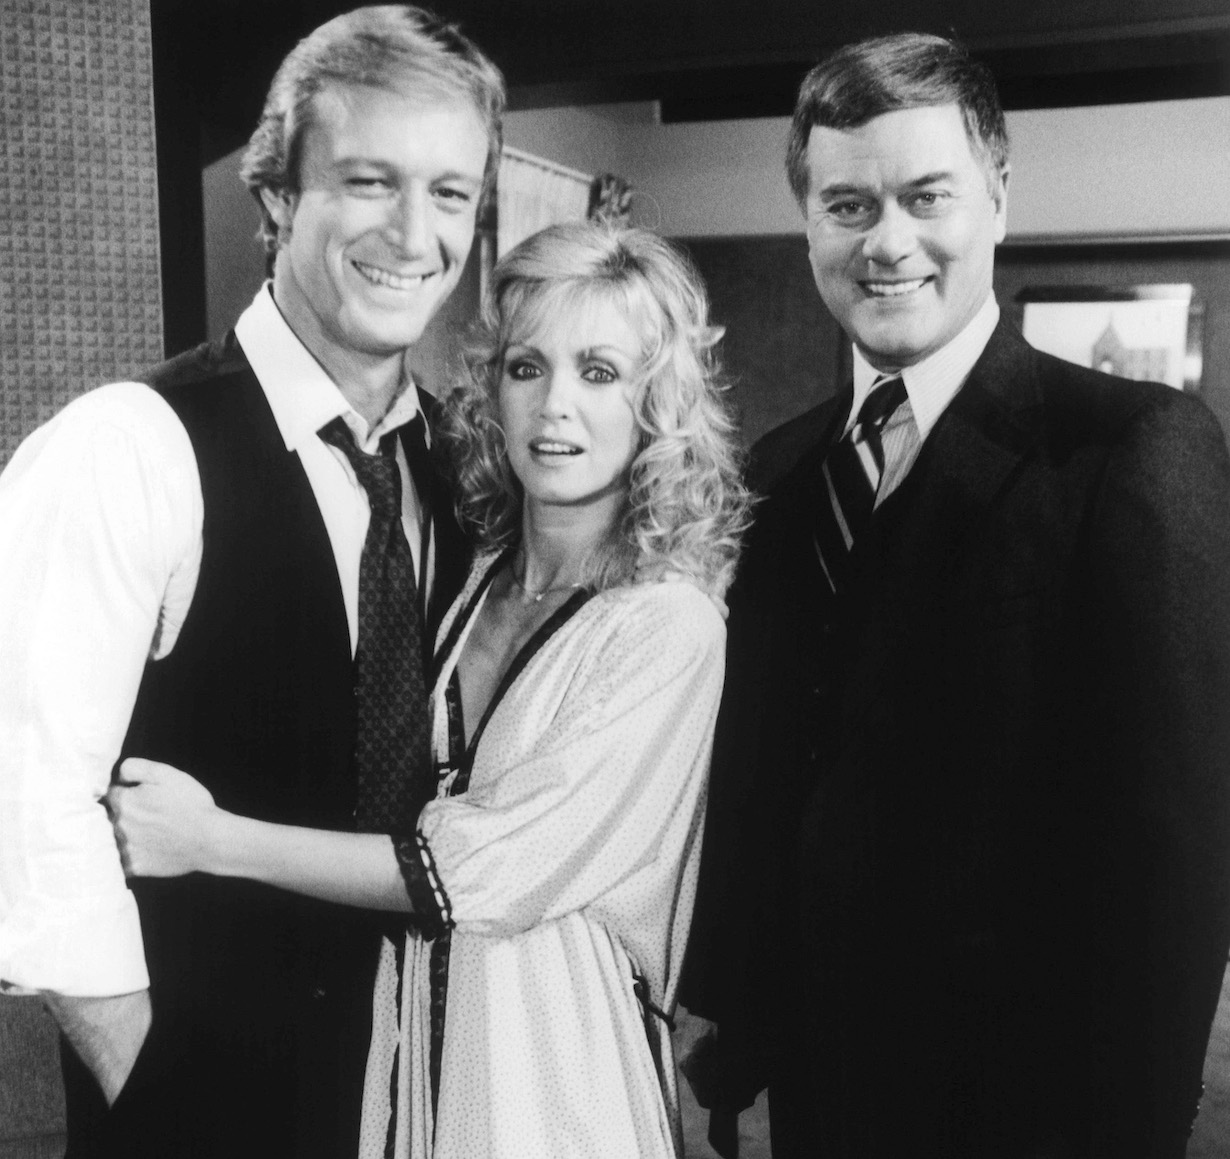 KNOTS LANDING, from left: Ted Shackleford, Donna Mills, Larry Hagman in 'New Beginnings' (Season 4, Episode 6, aired October 29, 1982), 1979-93.